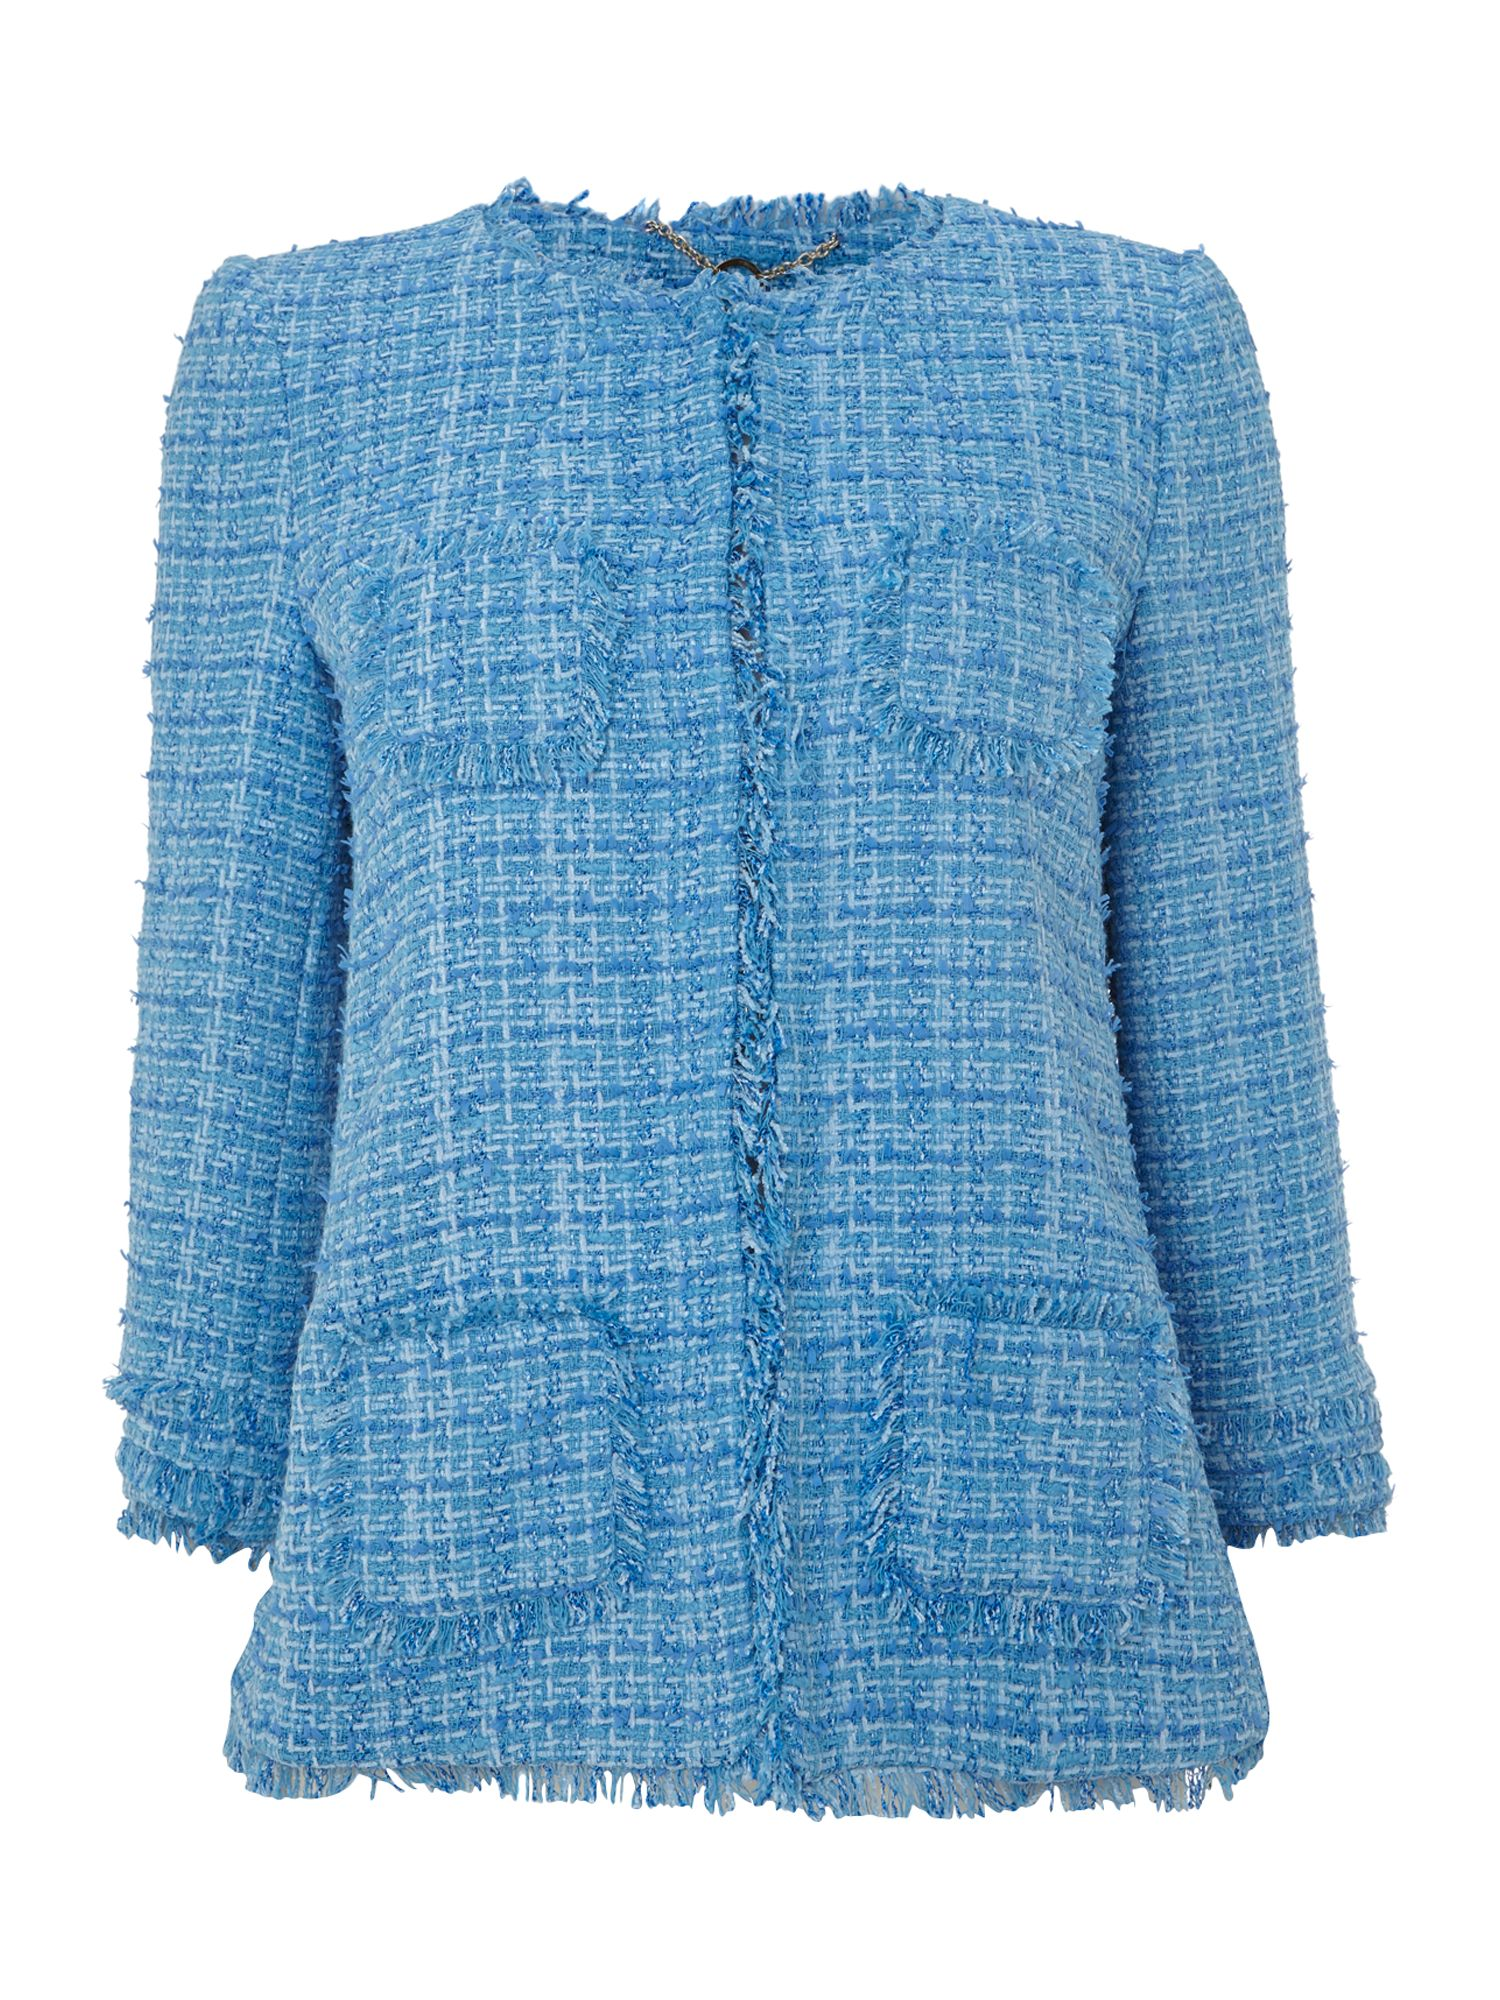 Bautta long sleeved boucle jacket